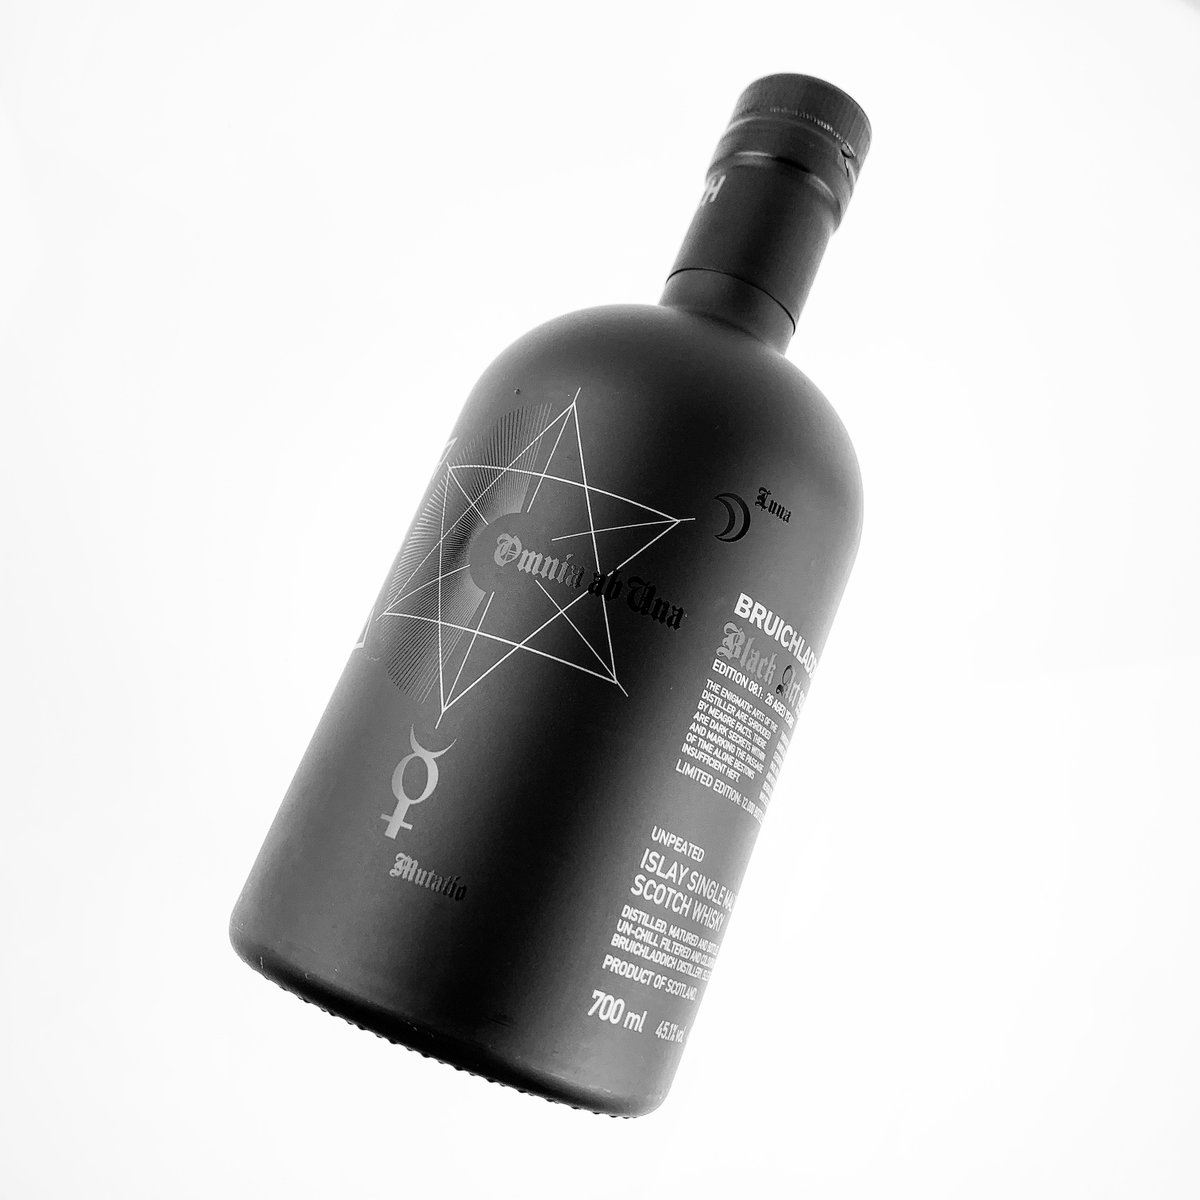 The eighth in the mysterious Black Art series from @Bruichladdich #distillery. Available and ready for dispatch at @abbeywhisky >> £280 with #freeukdelivery  https://t.co/bSVKjuY3T0 https://t.co/4h6e05Qyb0